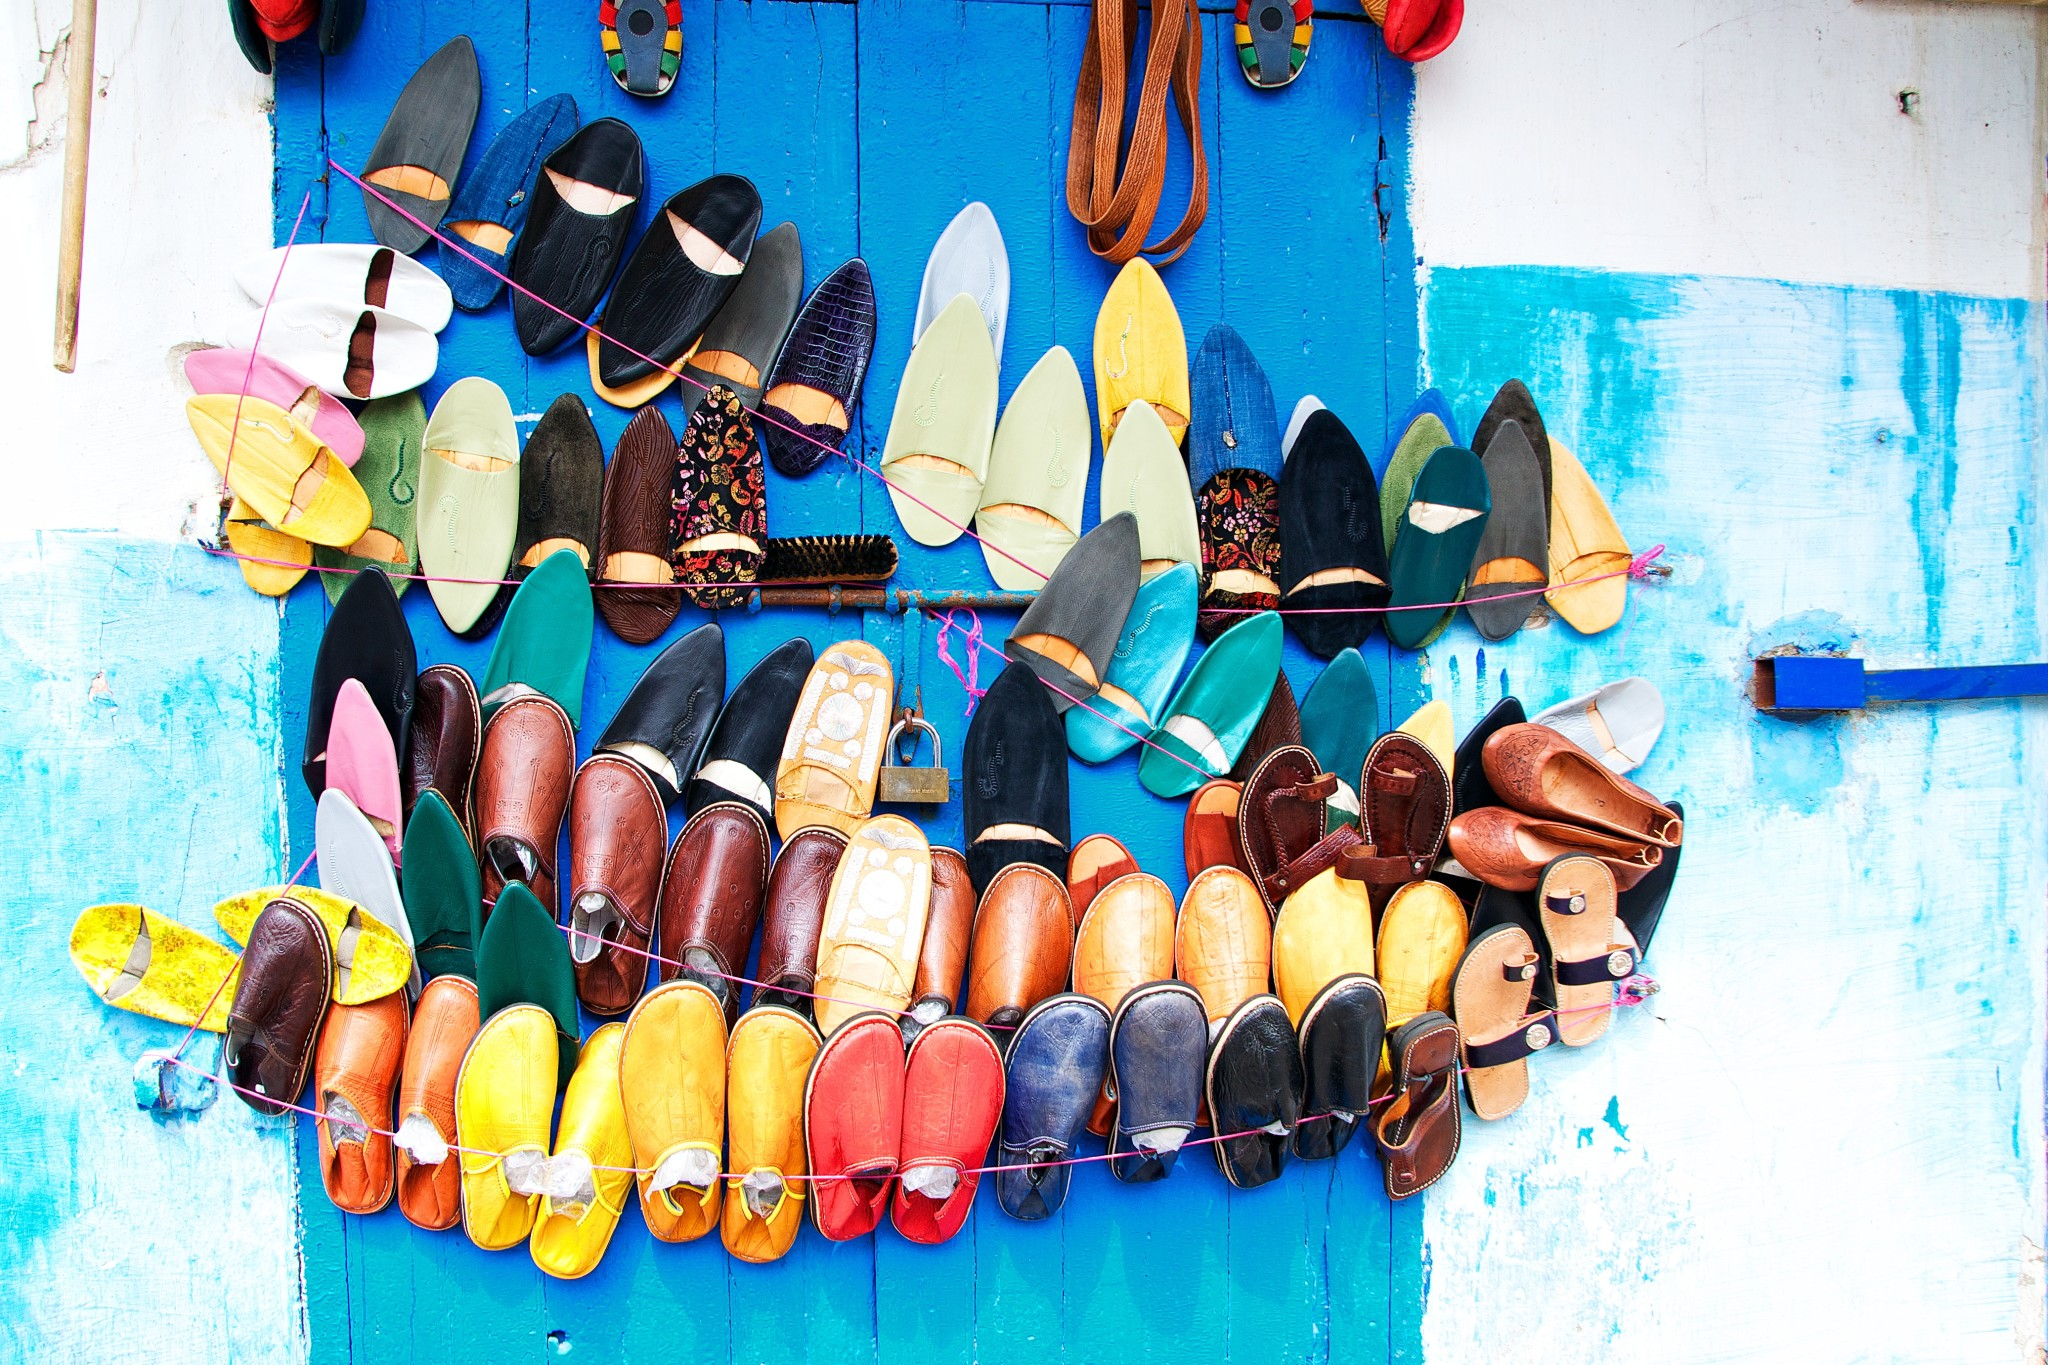 Handmade leather babouche slippers of Morocco